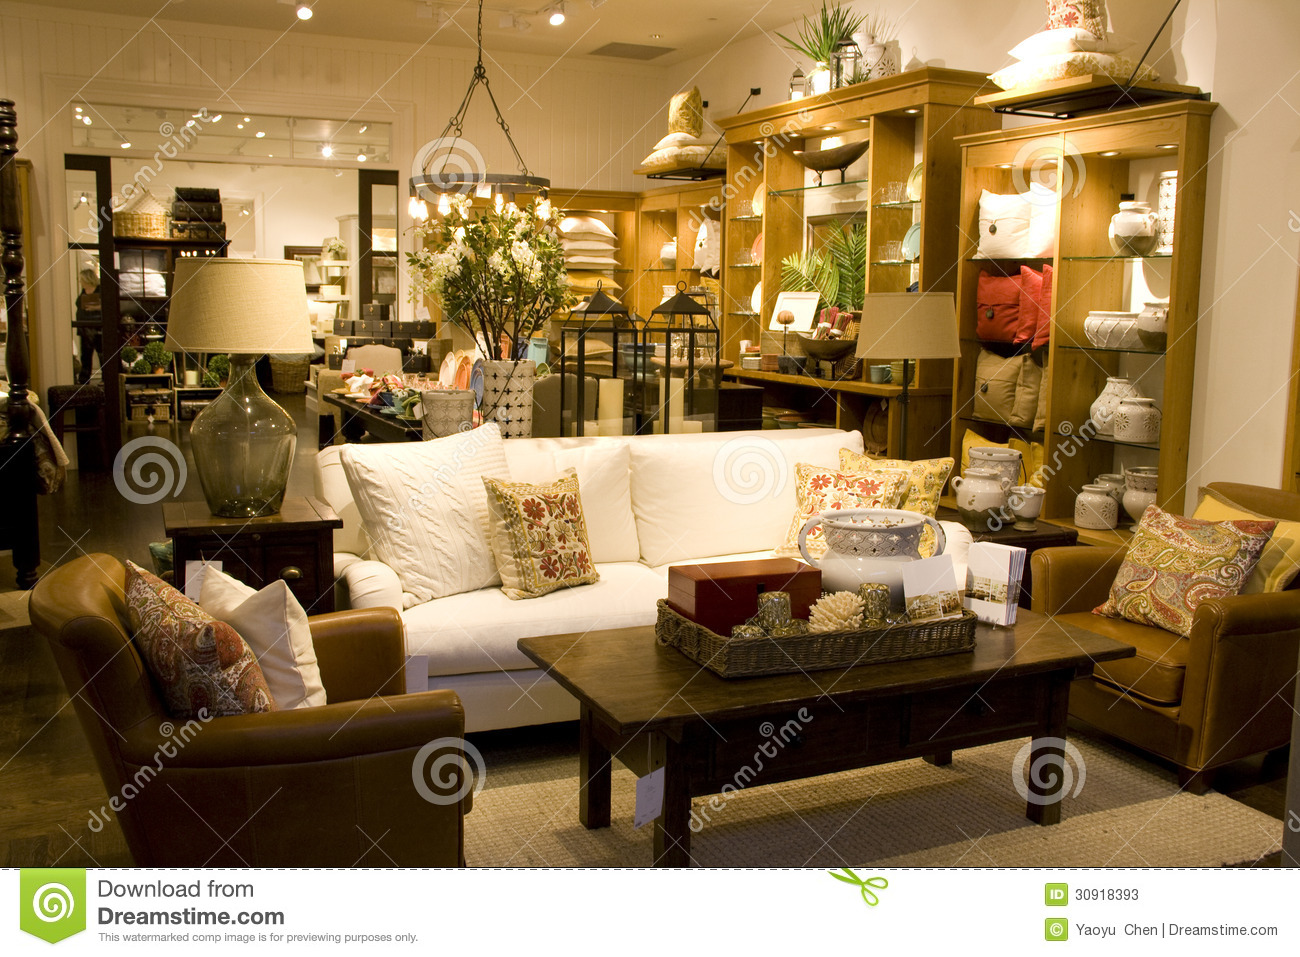 Furniture And Home Decor Store Stock Photos - Image: 30918393